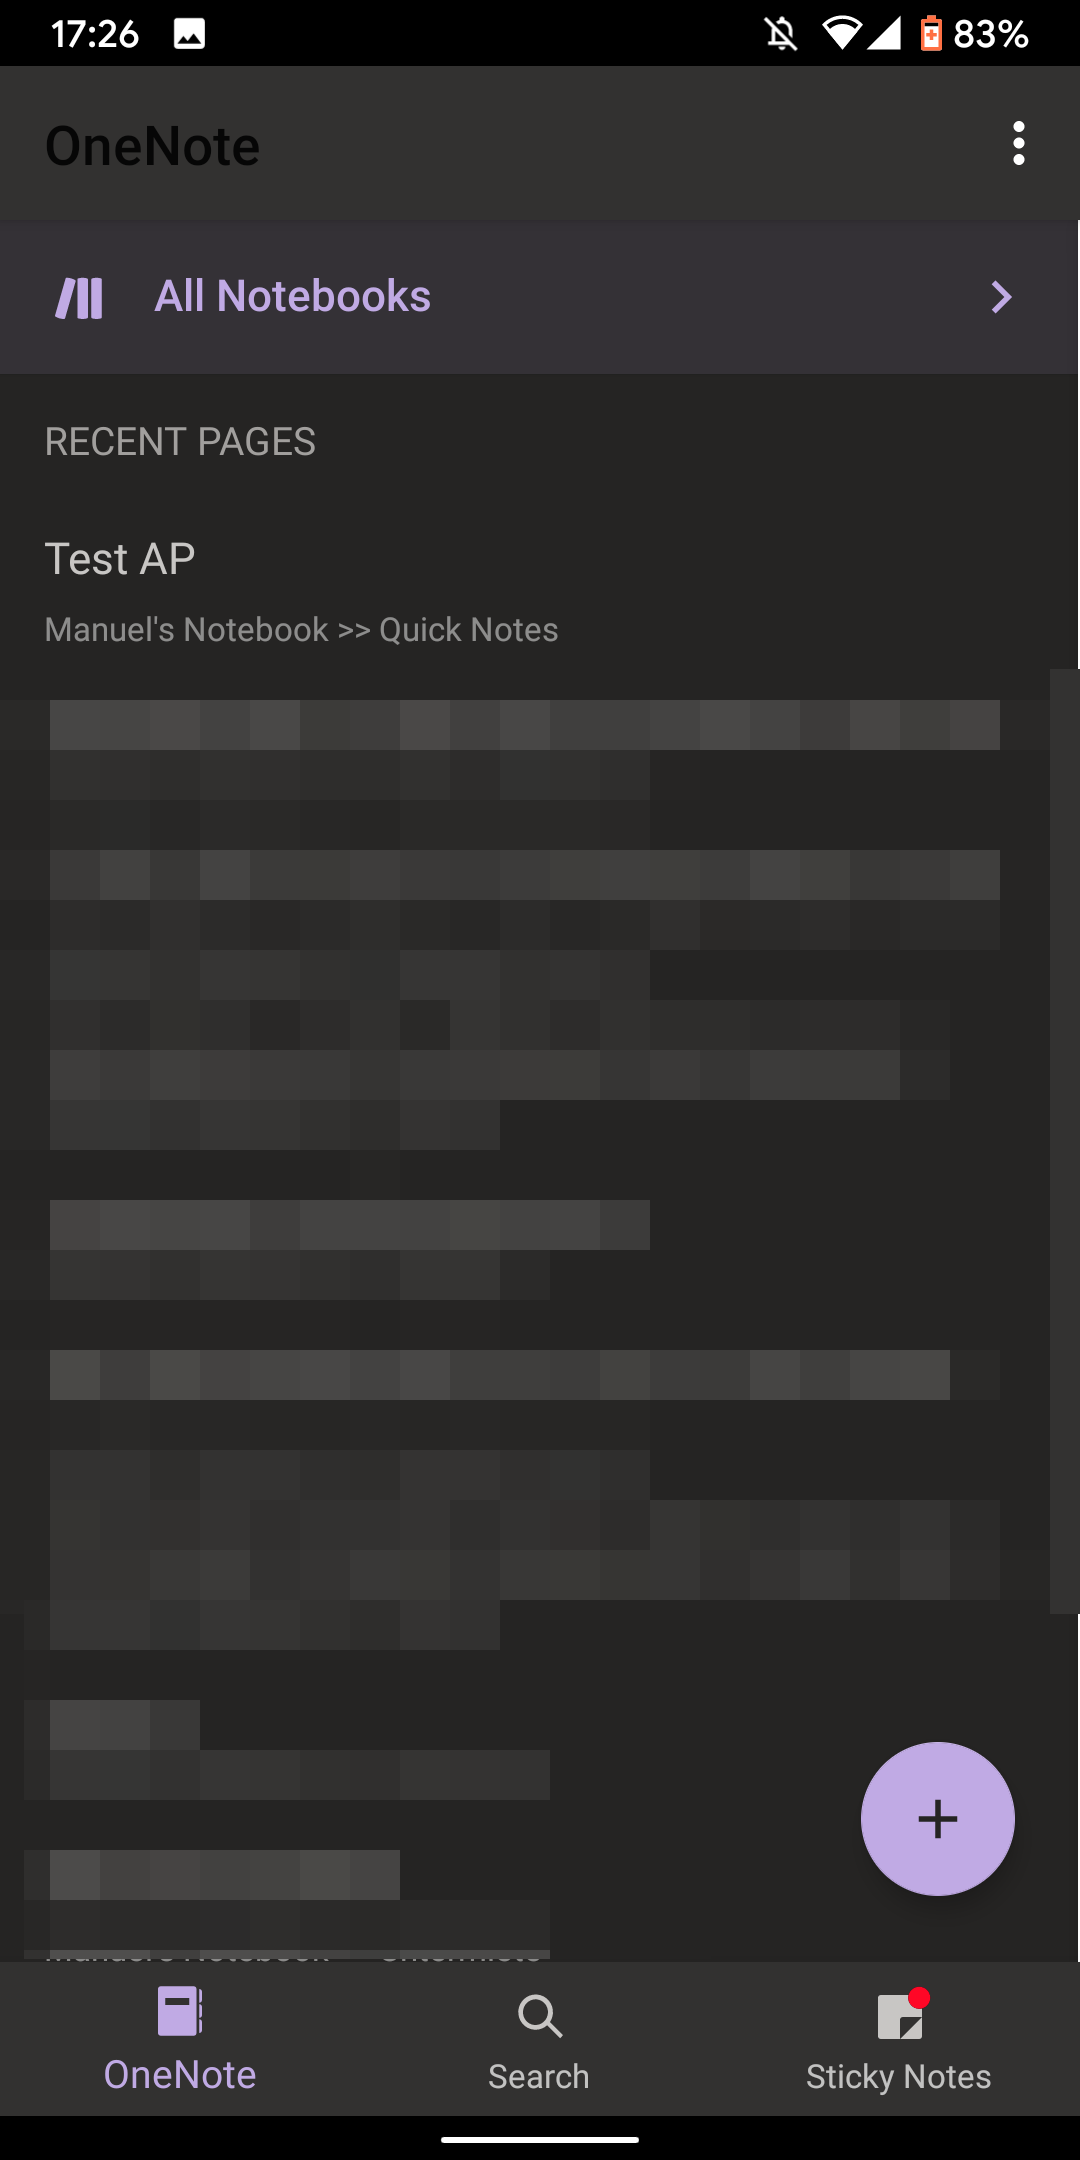 Update: Rolling out] OneNote is getting a dark mode that will